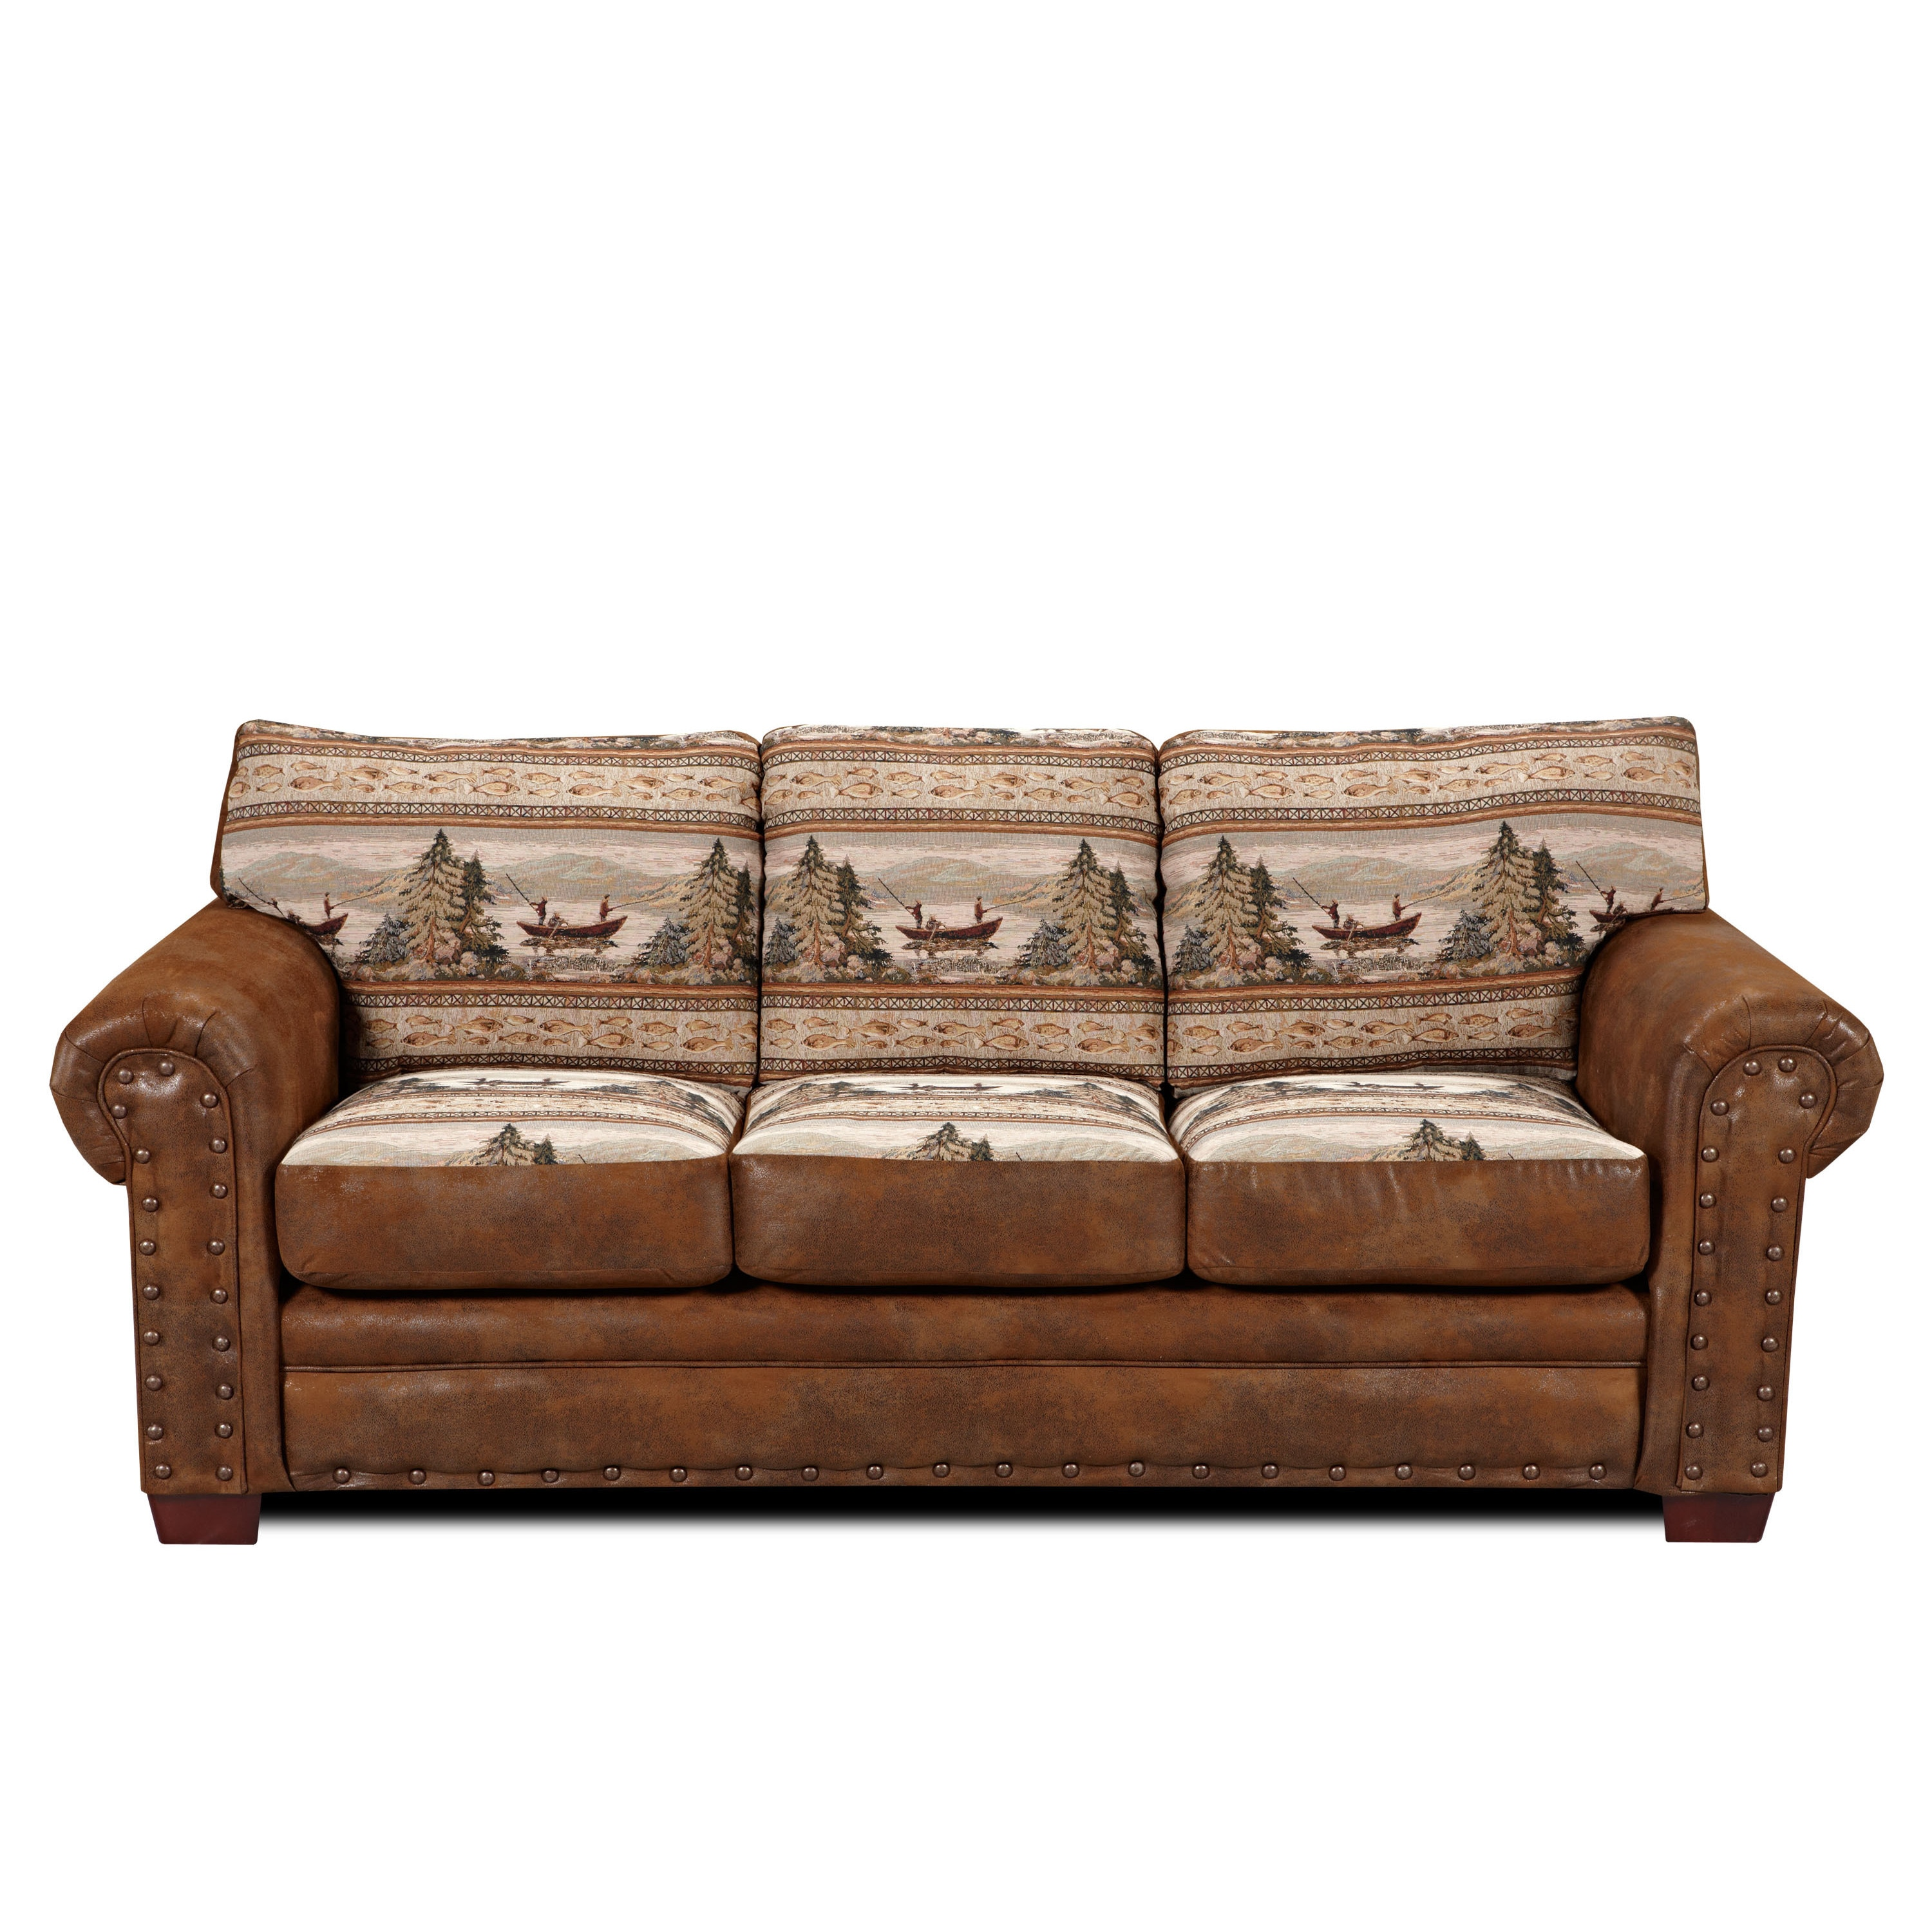 Alpine Lodge Sofa On Free Shipping Today 9230514